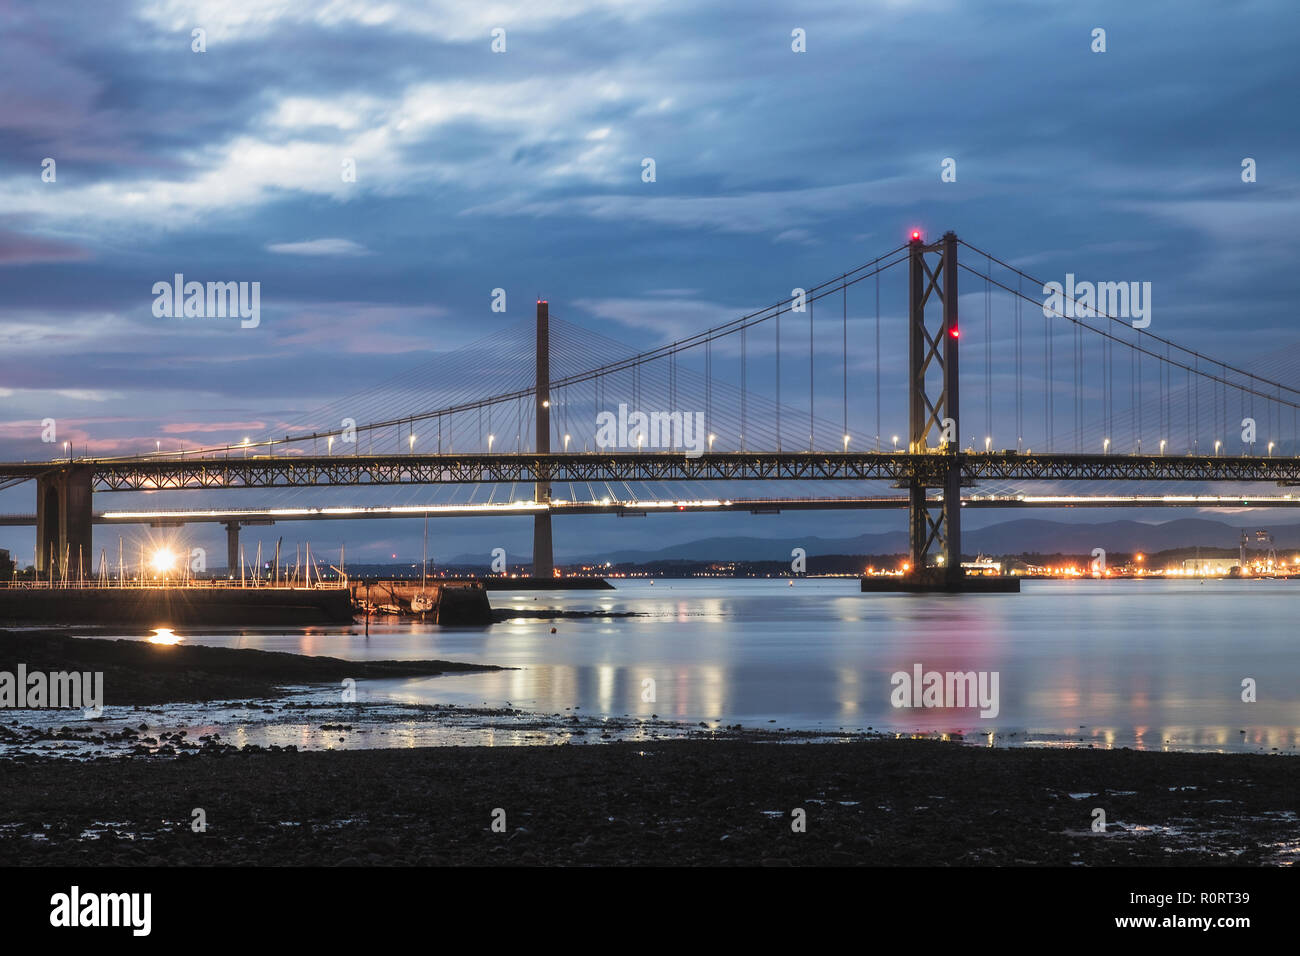 Night view on two bridges, Forth Road Bridge and Queensferry Crossing. Scotland, United Kingdom Stock Photo